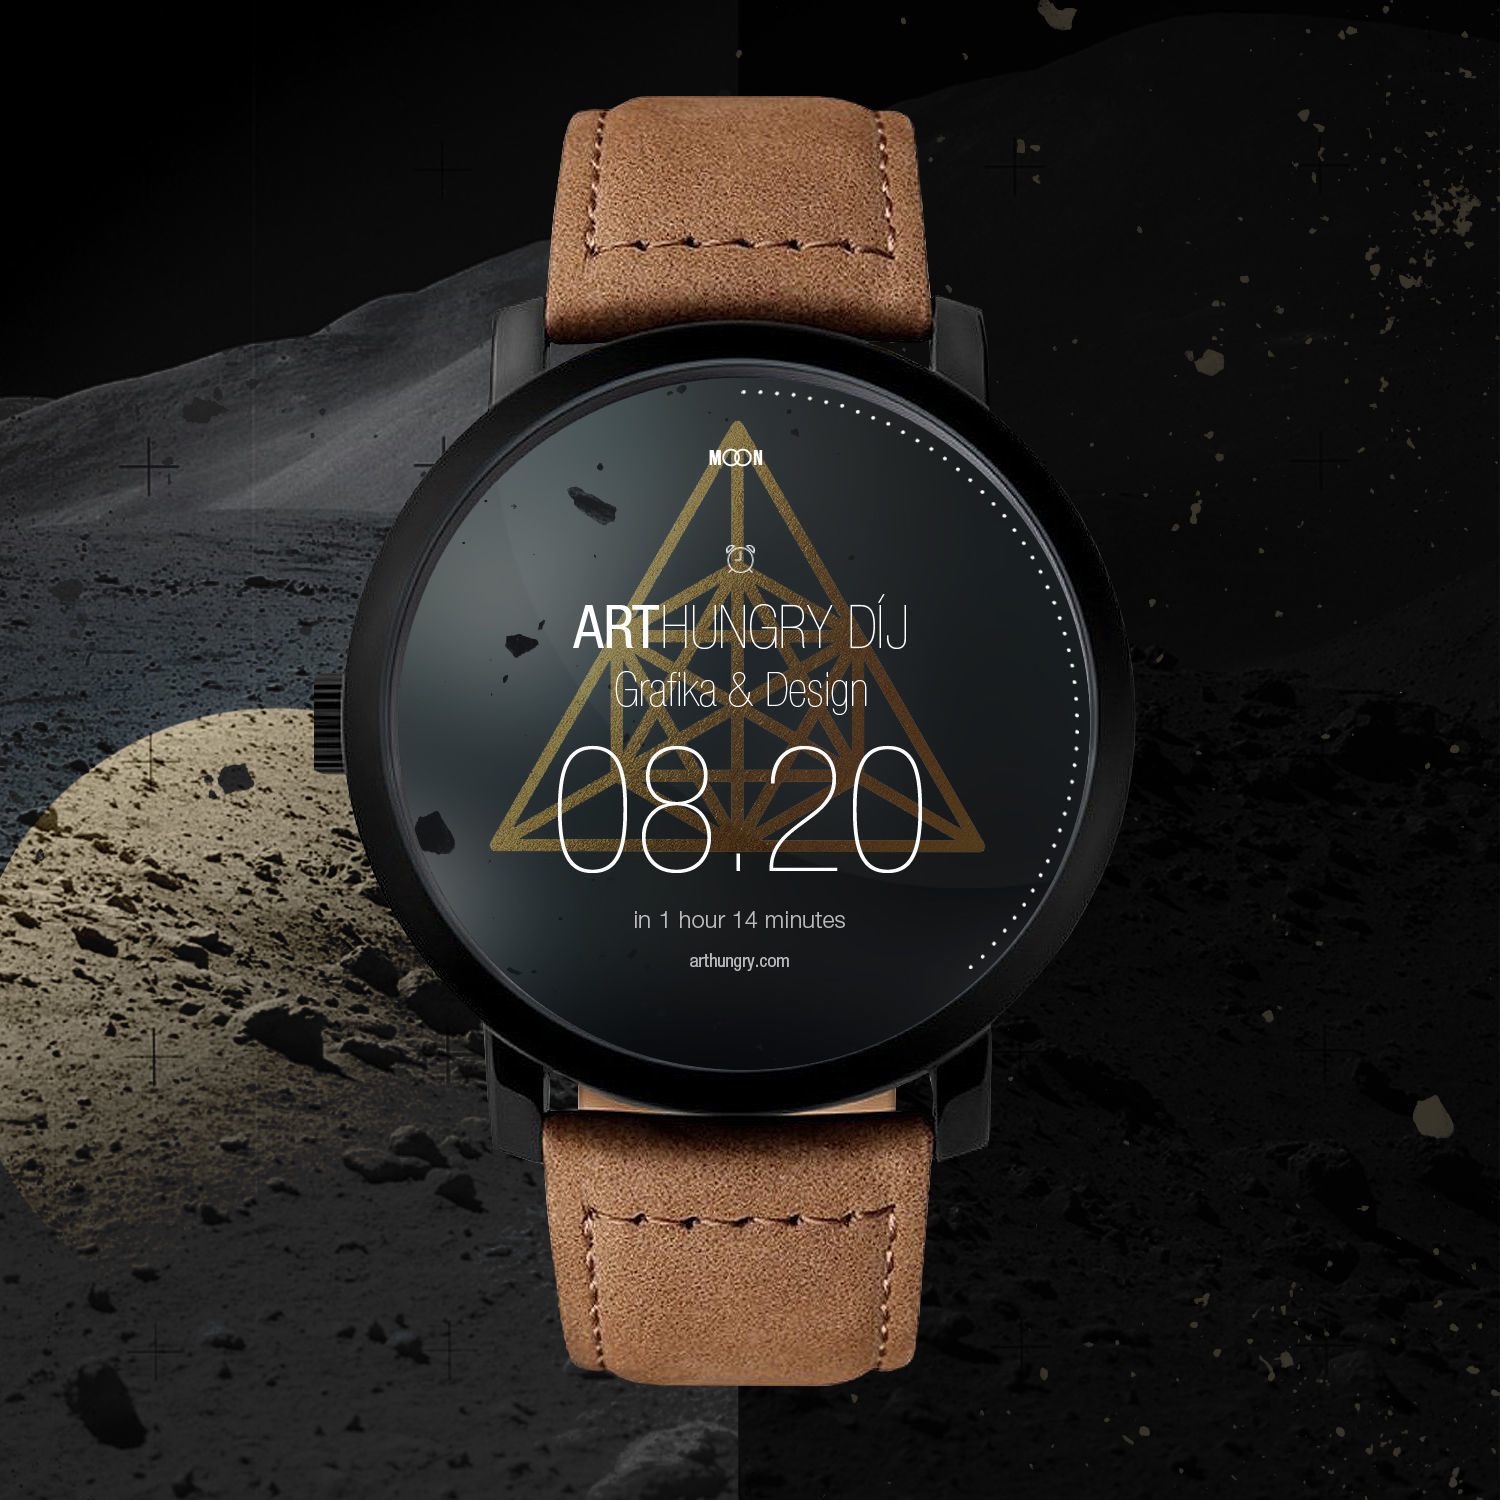 MOON Smartwatch - 1 by erosbalazs